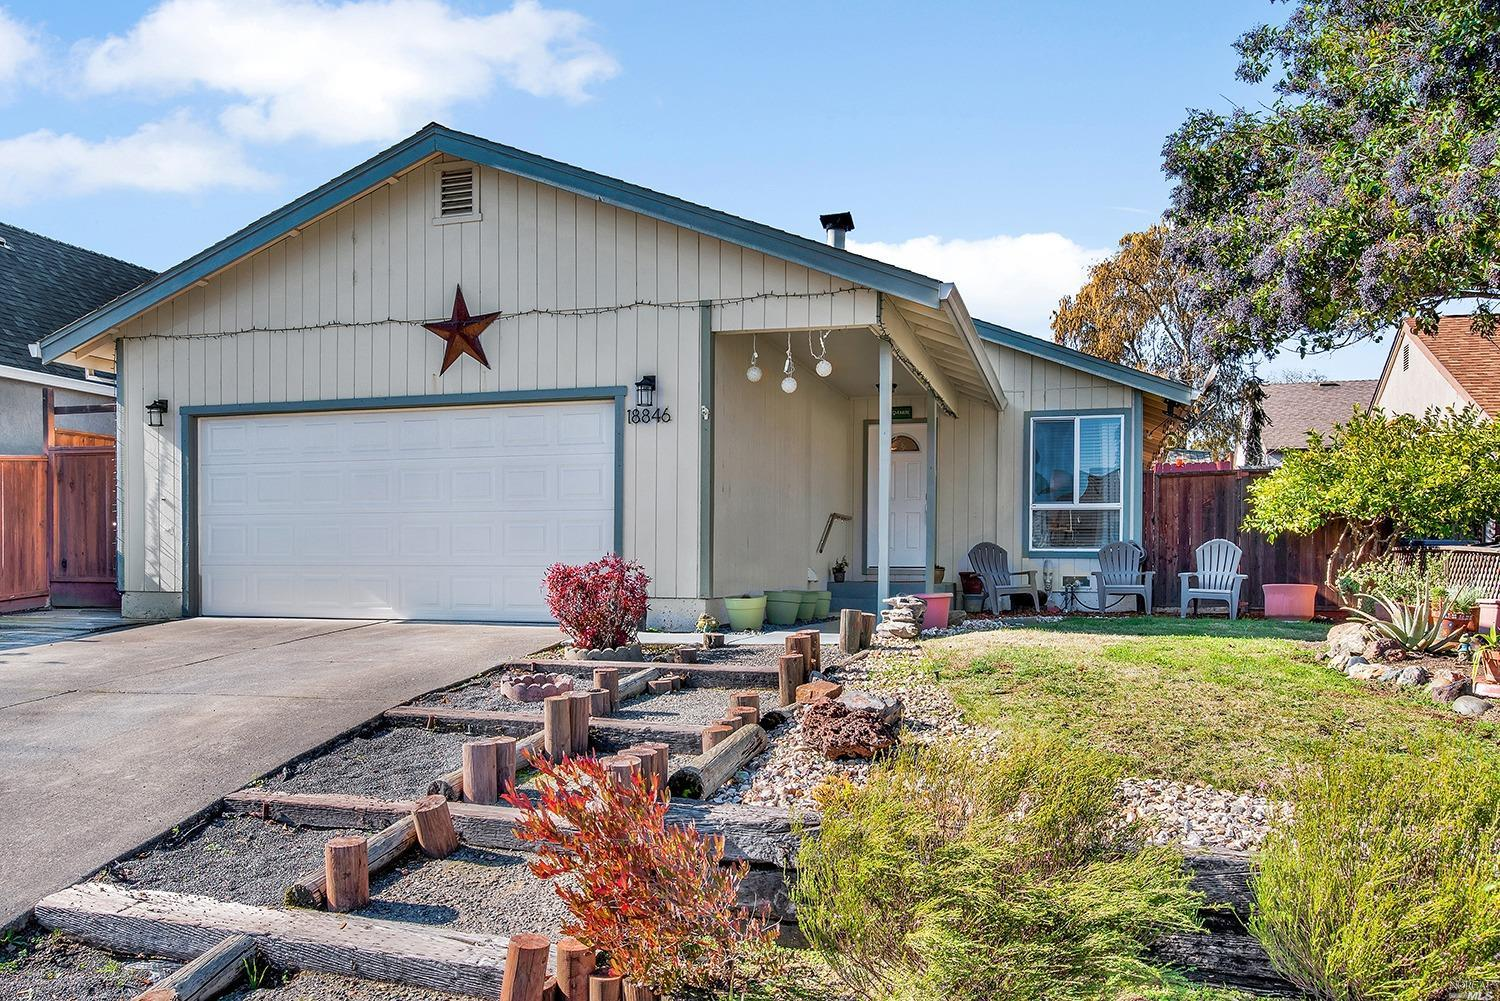 Very sweet 3 Bedroom/ 1 bath home in a wonderful  neighborhood.  Open updated eat-in kitchen. All new appliances, granite countertops, tile floors. Cozy fireplace in the living room and sliding doors to outside.  Large deck for family barbecue in the low maintenance back yard.